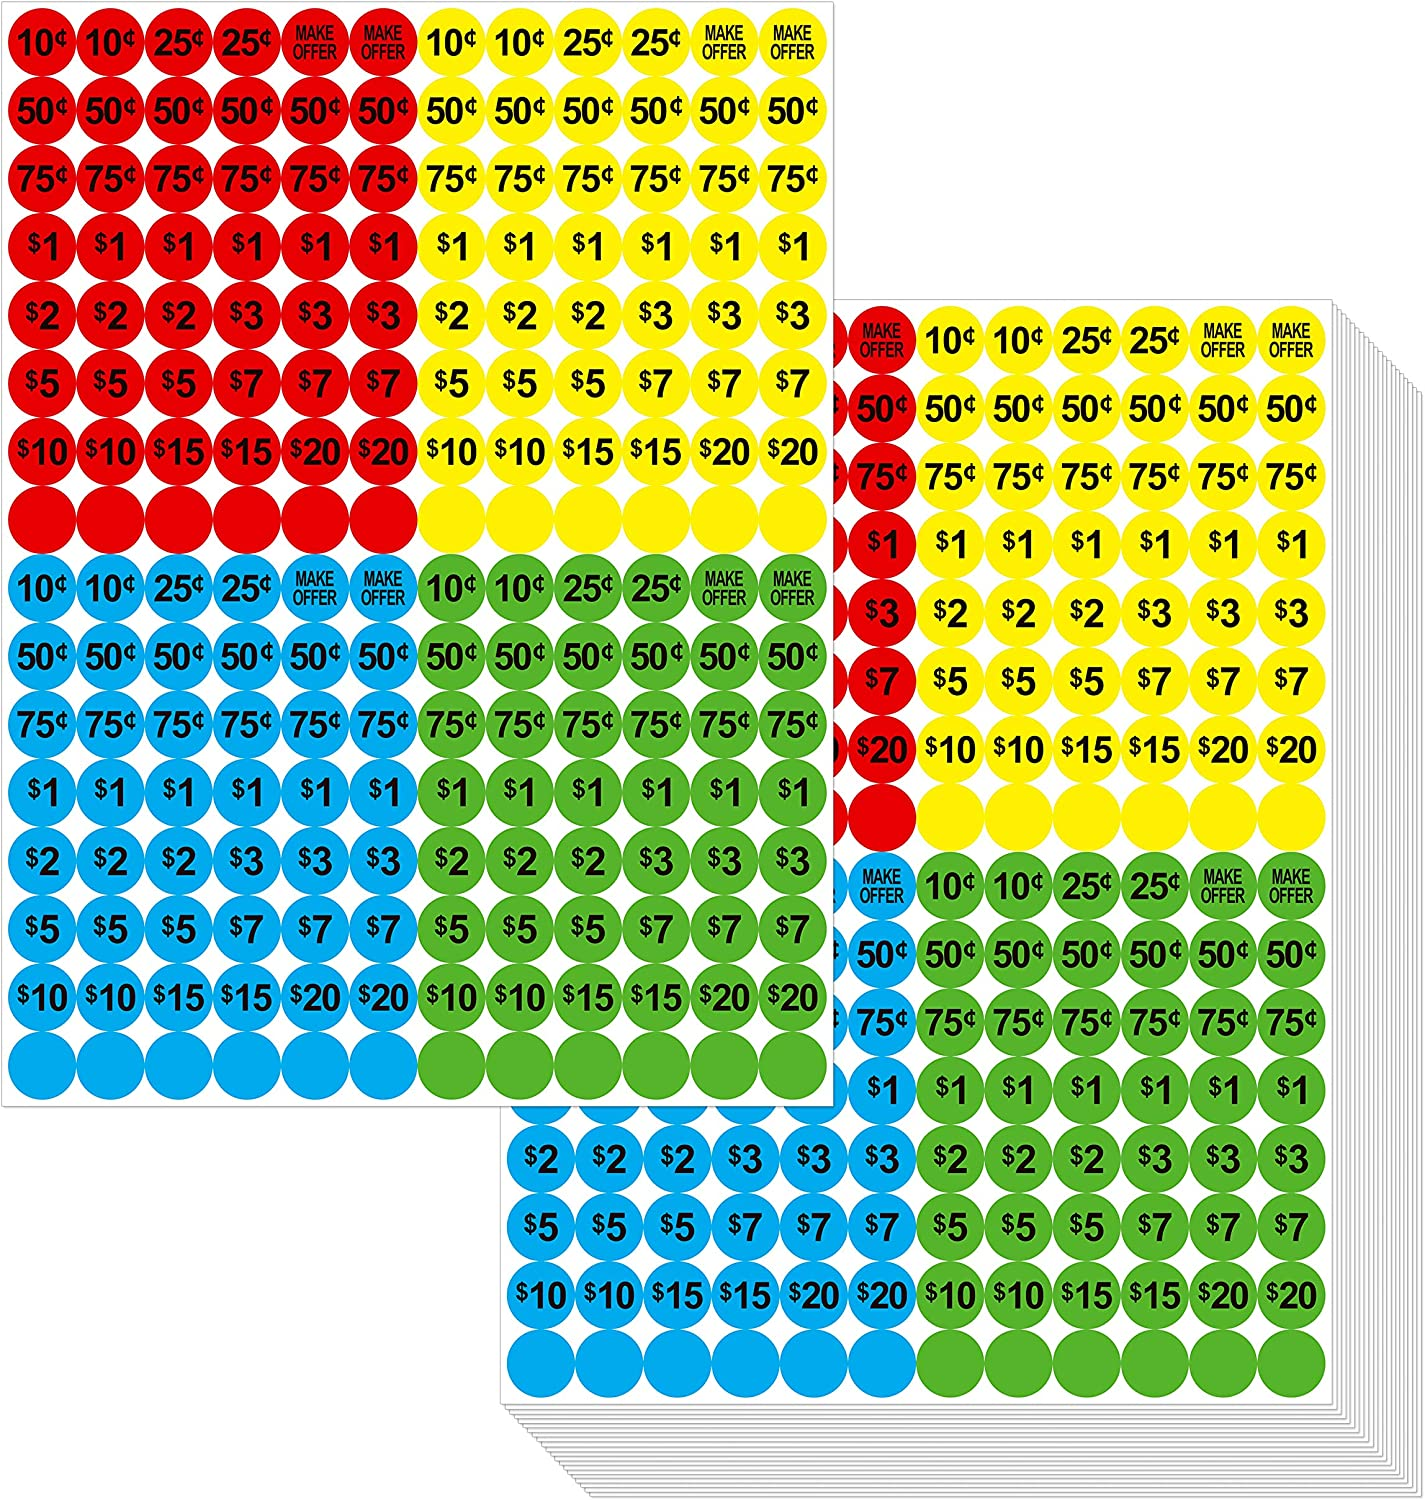 "3840 PCs Garage Sale Flea Market Pre-Priced Pricing Stickers in Bright Colors (Yellow/Red/Green/Cyan), 3/4"" in Diameter : Office Products"